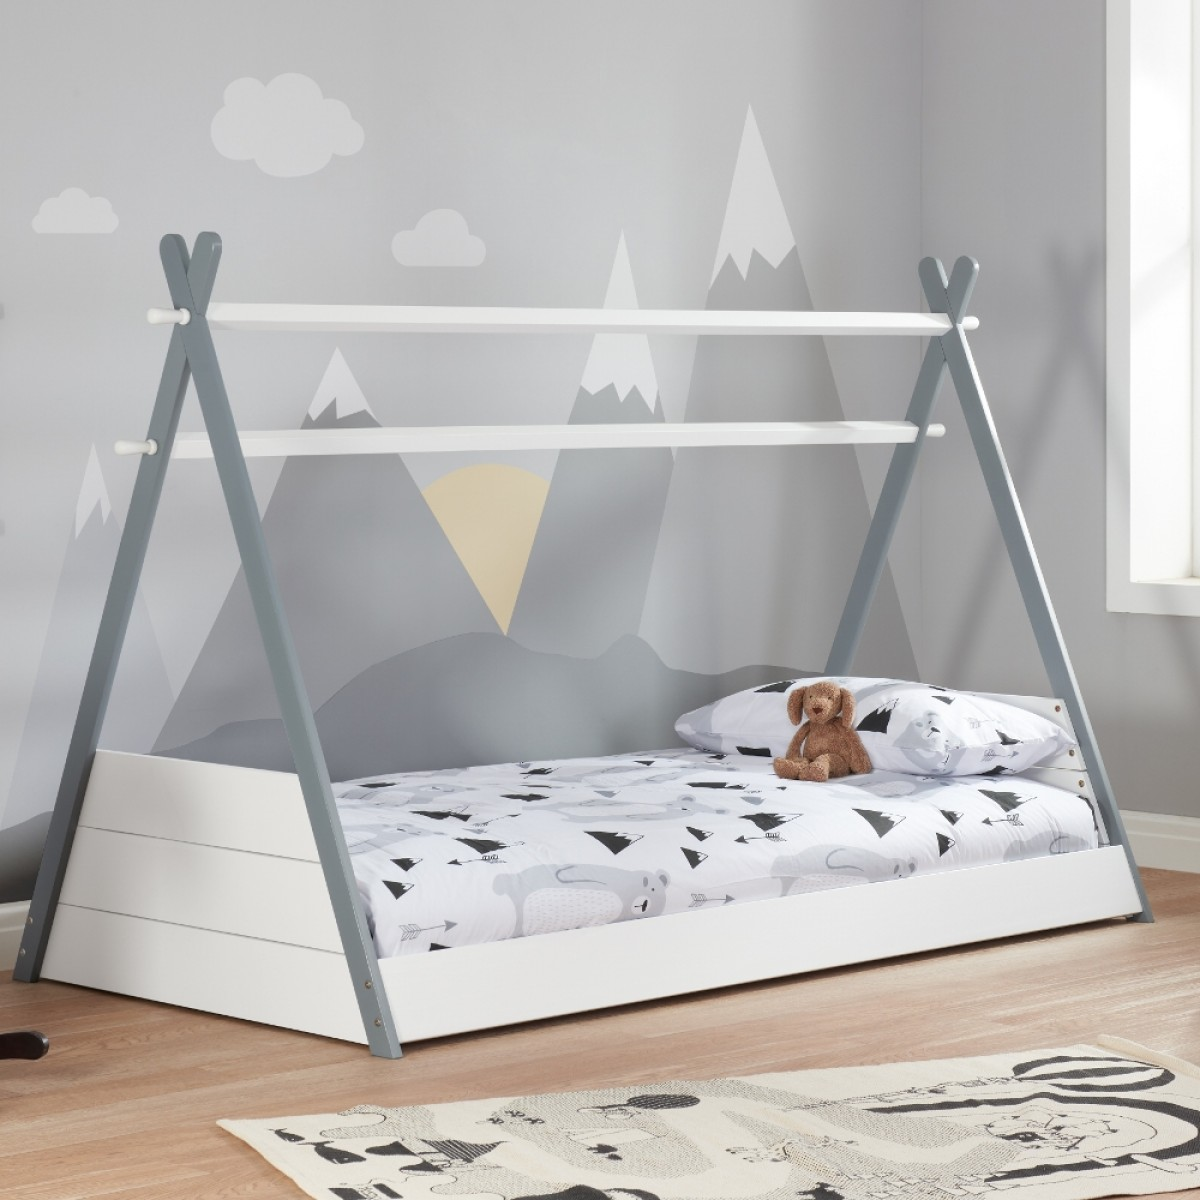 Teepee White and Grey Wooden Bed